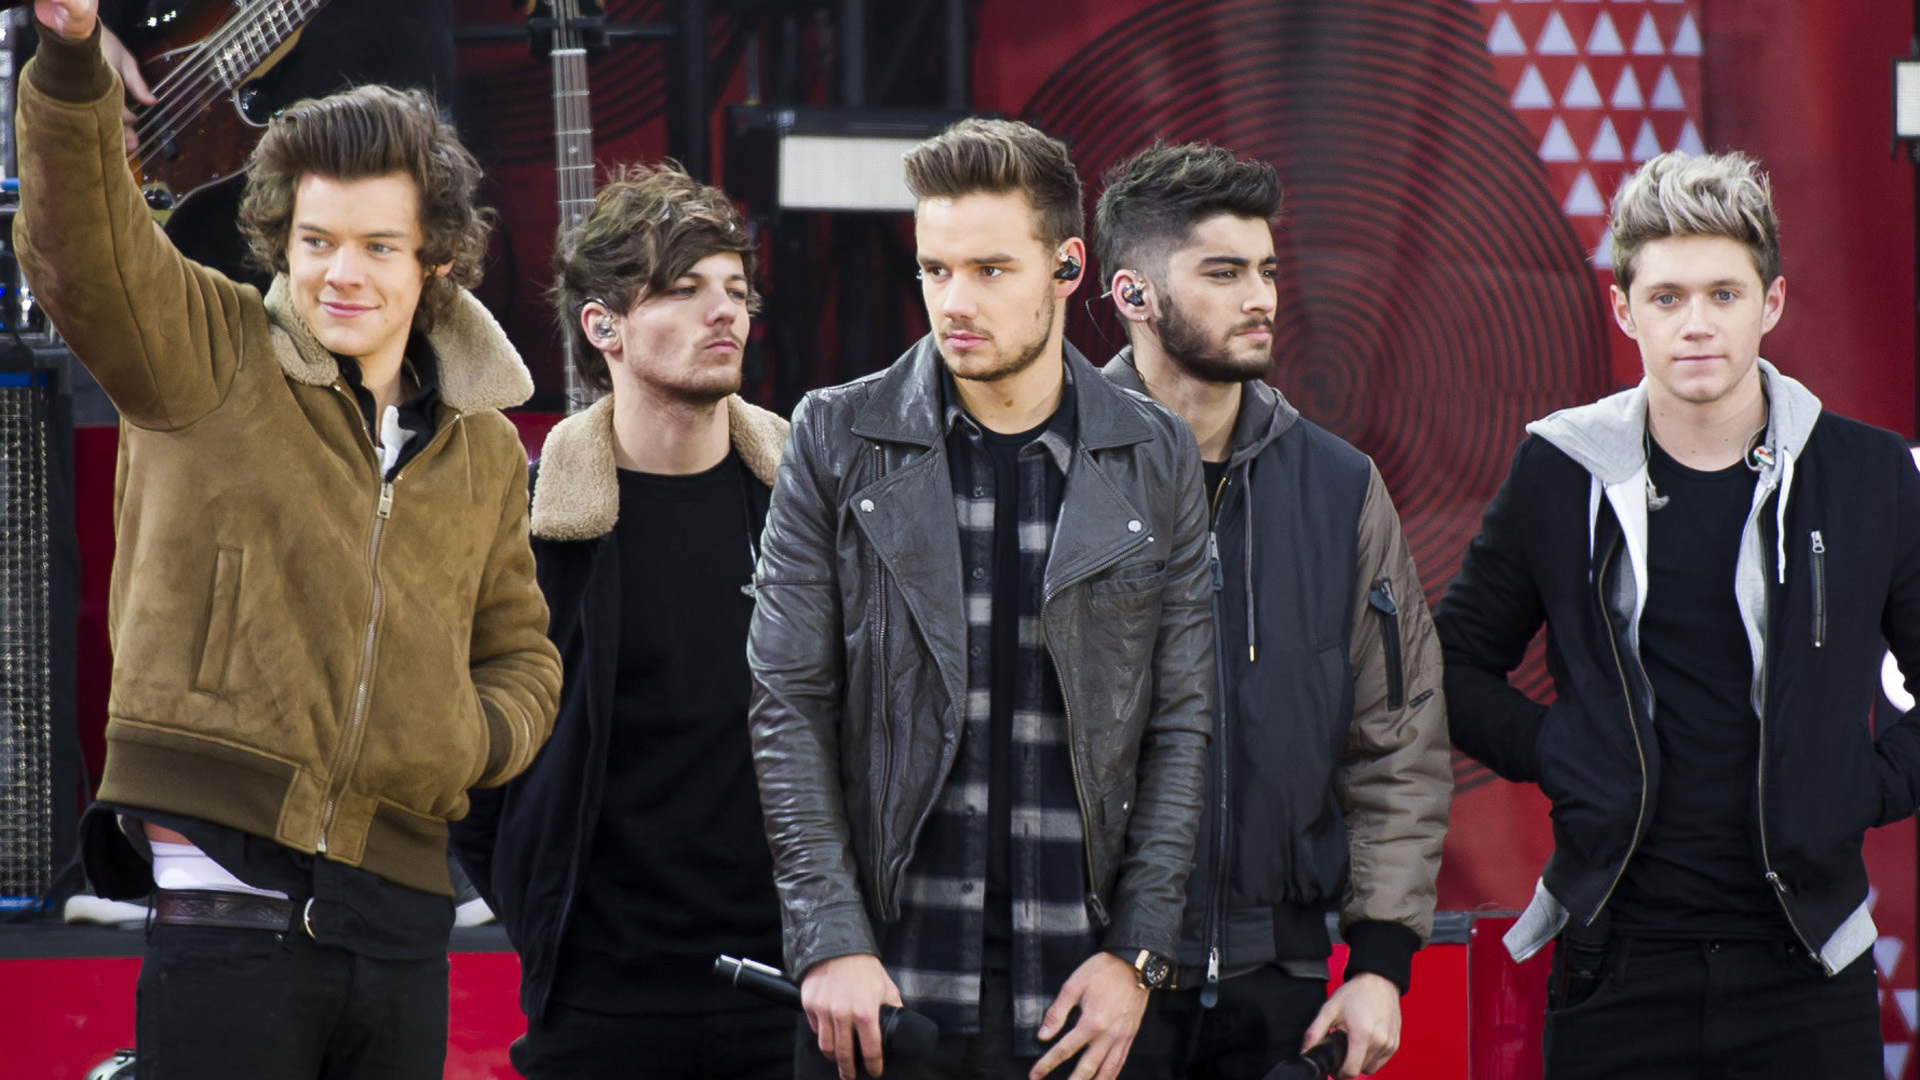 One Direction High Definition Wallpapers - One Direction 2014 Show - HD Wallpaper